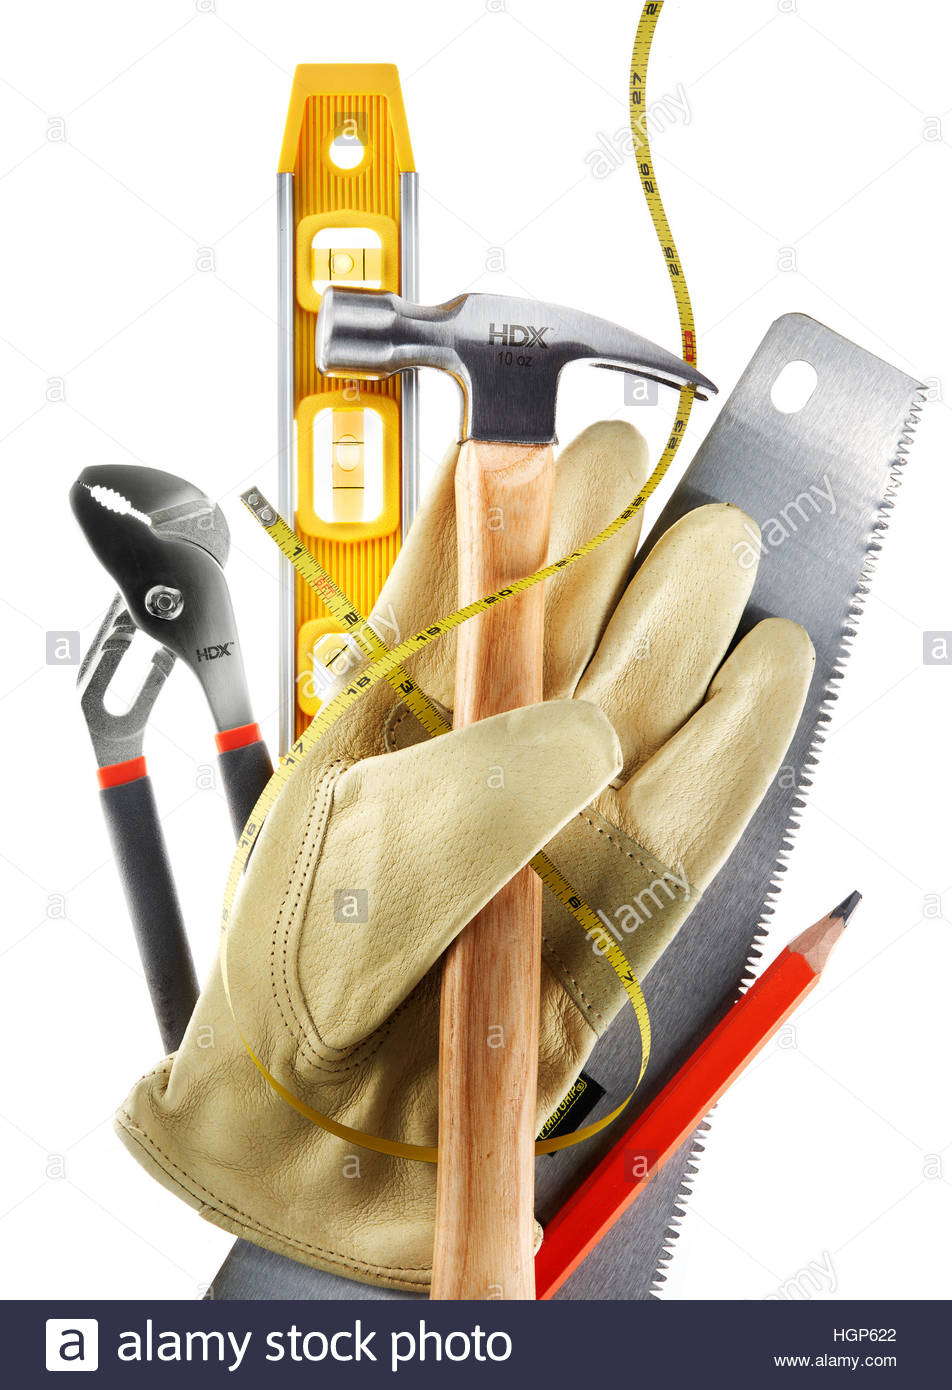 home building remodeling renovation builders tools level hammer leather gloves saw pencil - Home Building Tools